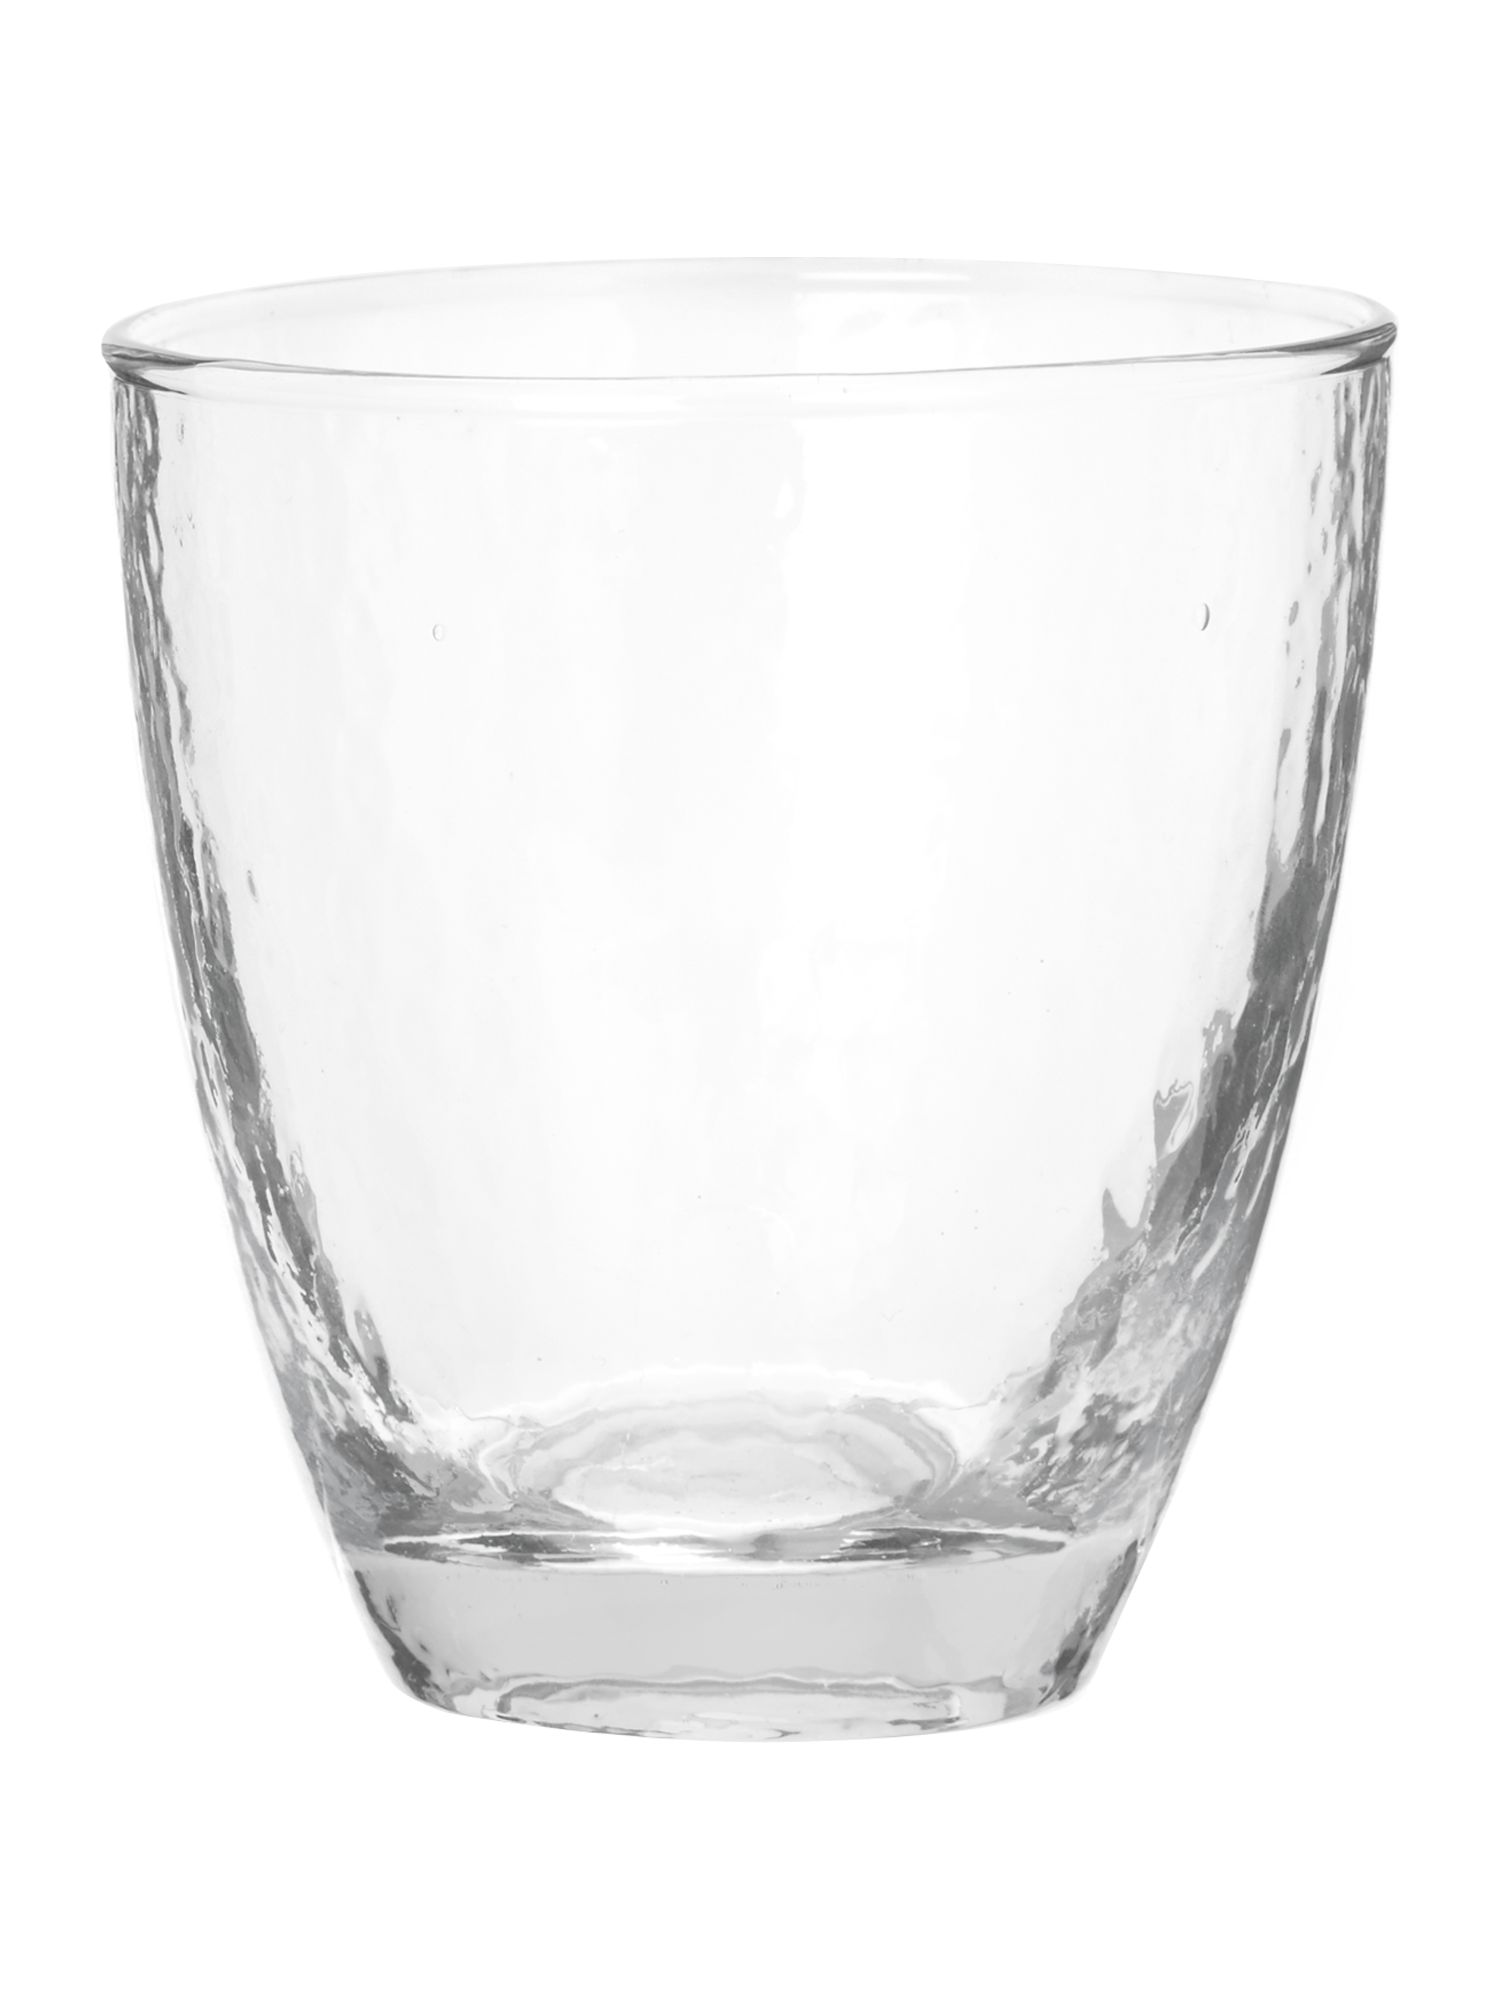 Ice pattern water glass in clear